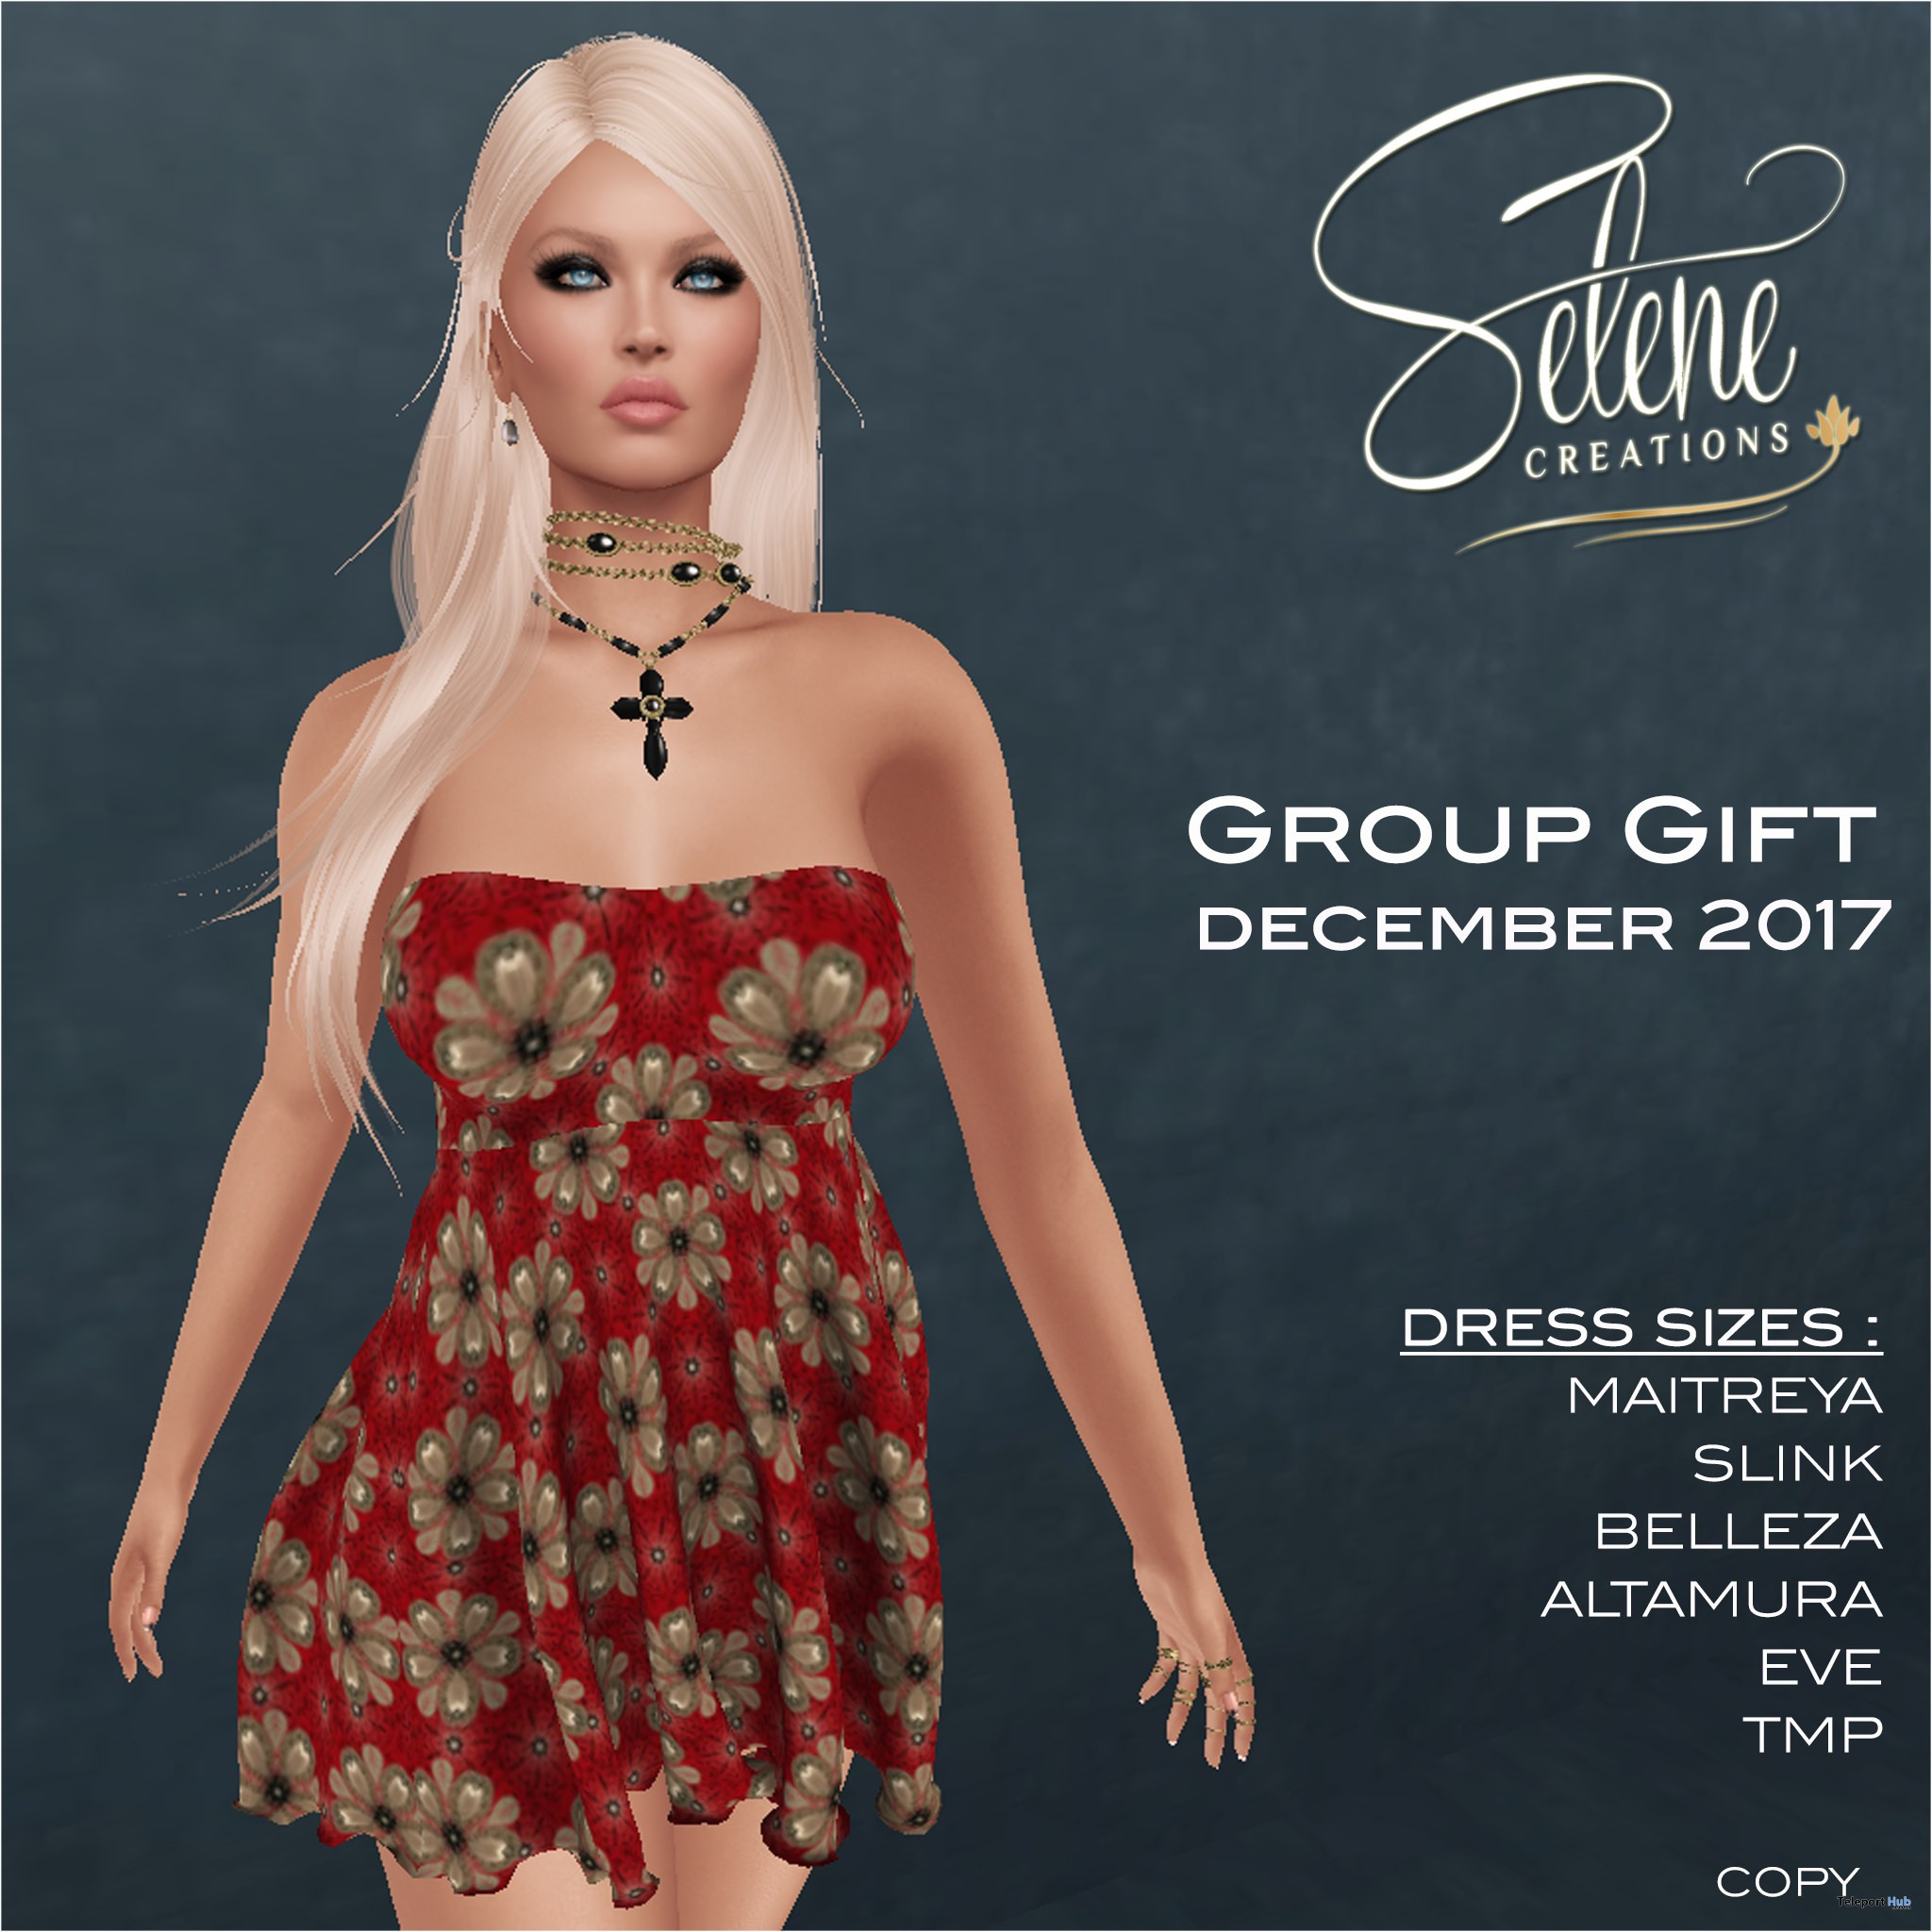 Floral Red Dress December 2017 Group Gift by Selene Creations - Teleport Hub - teleporthub.com